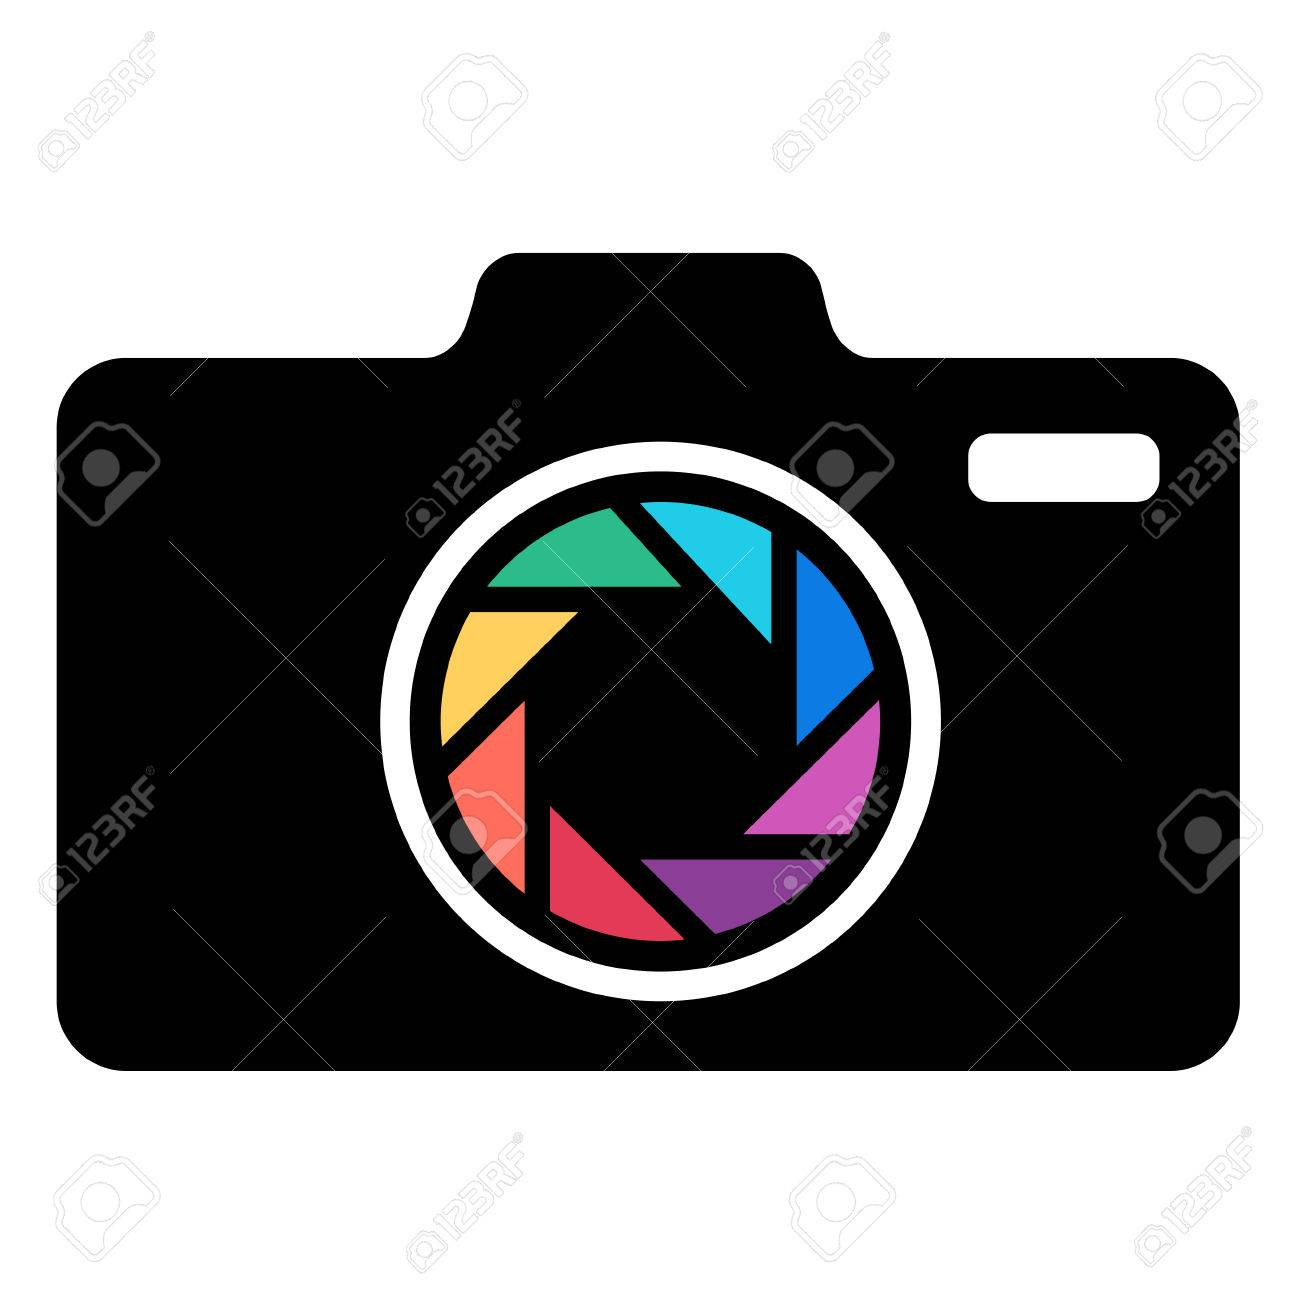 Black Camera icon with colorful lens. Vector - 55542249